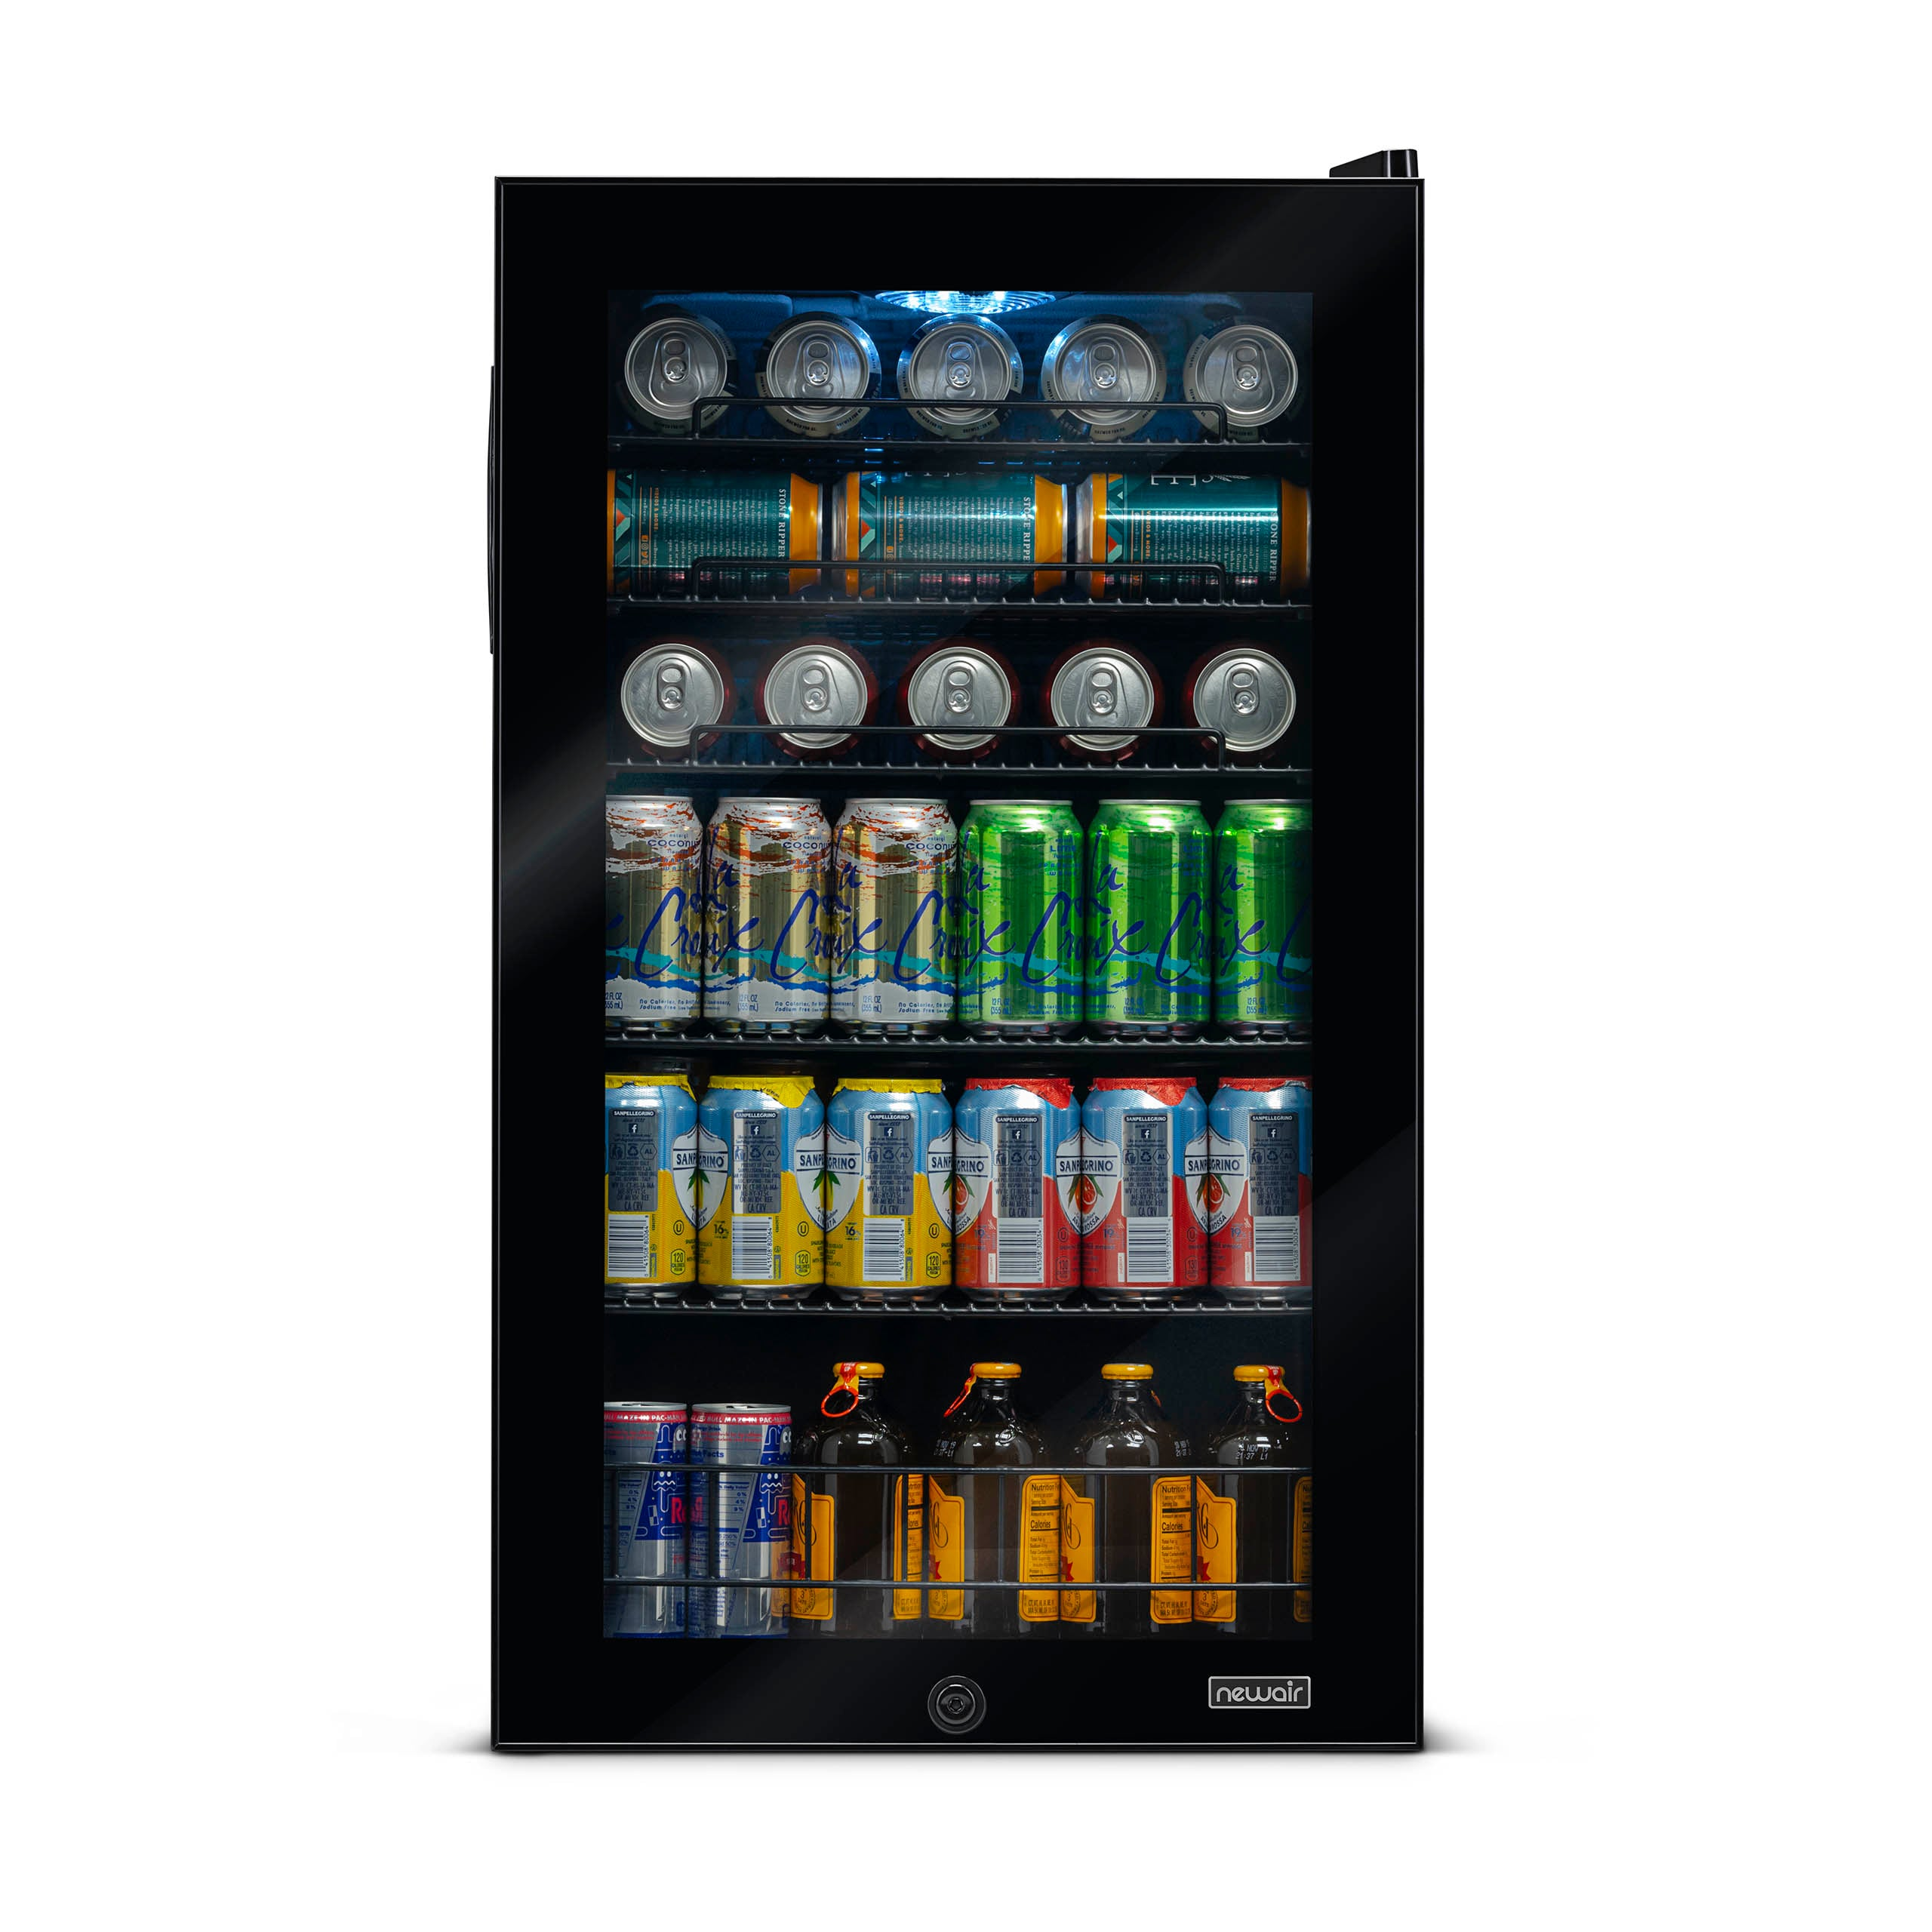 NewAir_126_Can_Freestanding_Beverage_Fridge_in_Onyx_Black_with_Adjustable_Shelves